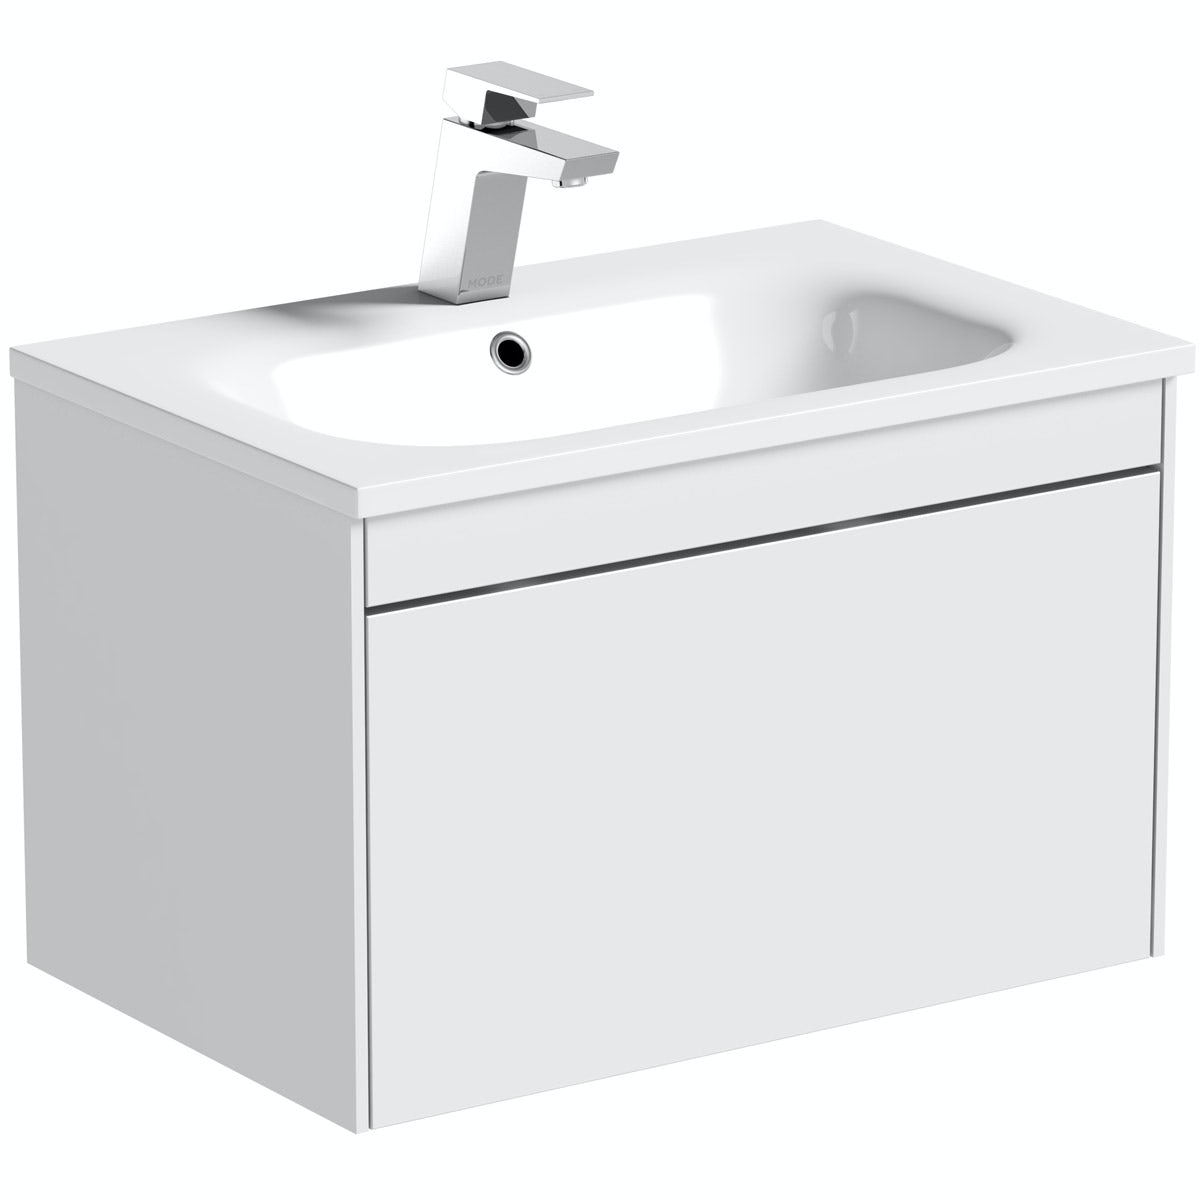 Mode Austin white wall mounted unit and stone basin 600mm